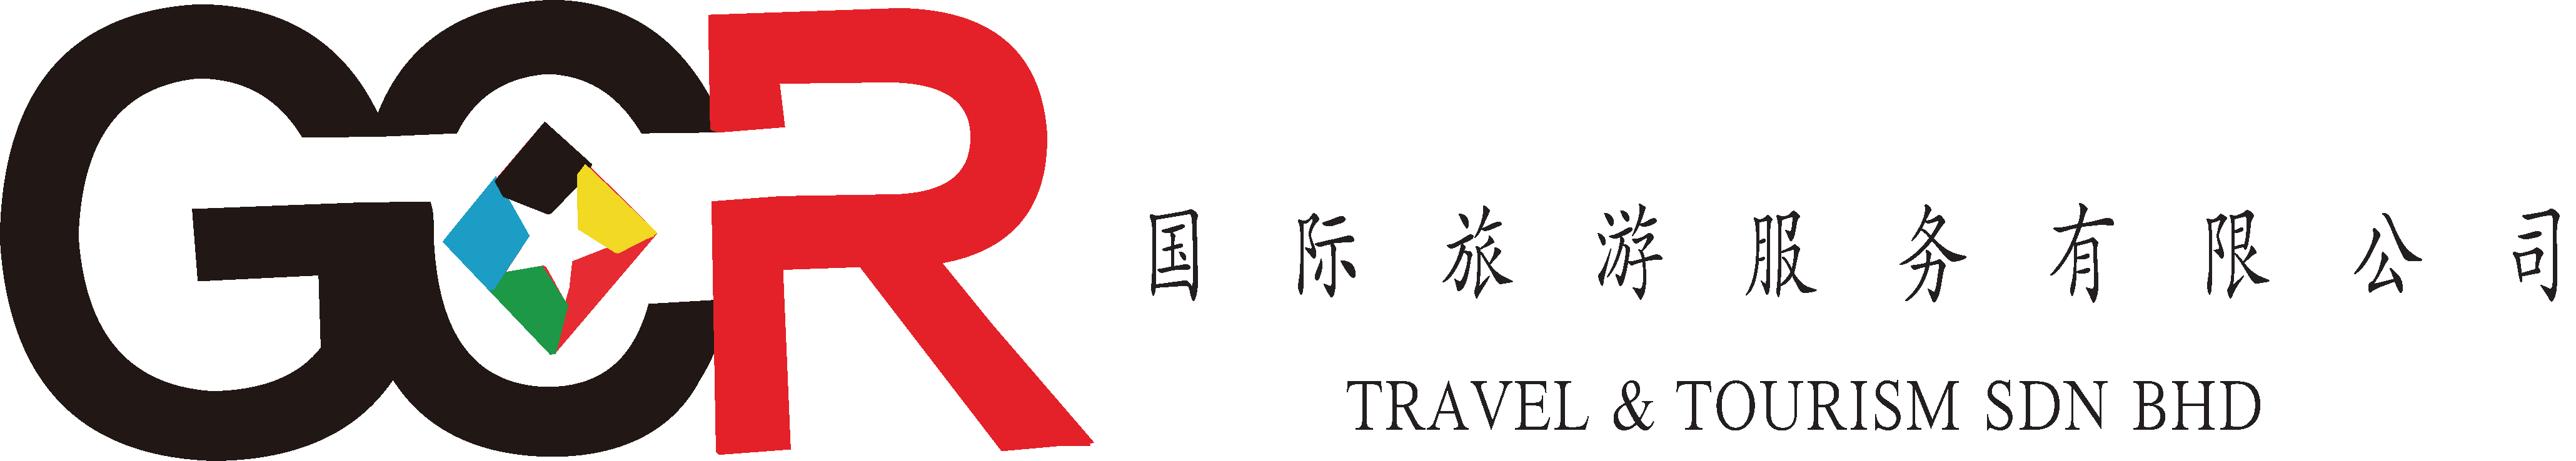 GCR Travel & Tourism/*